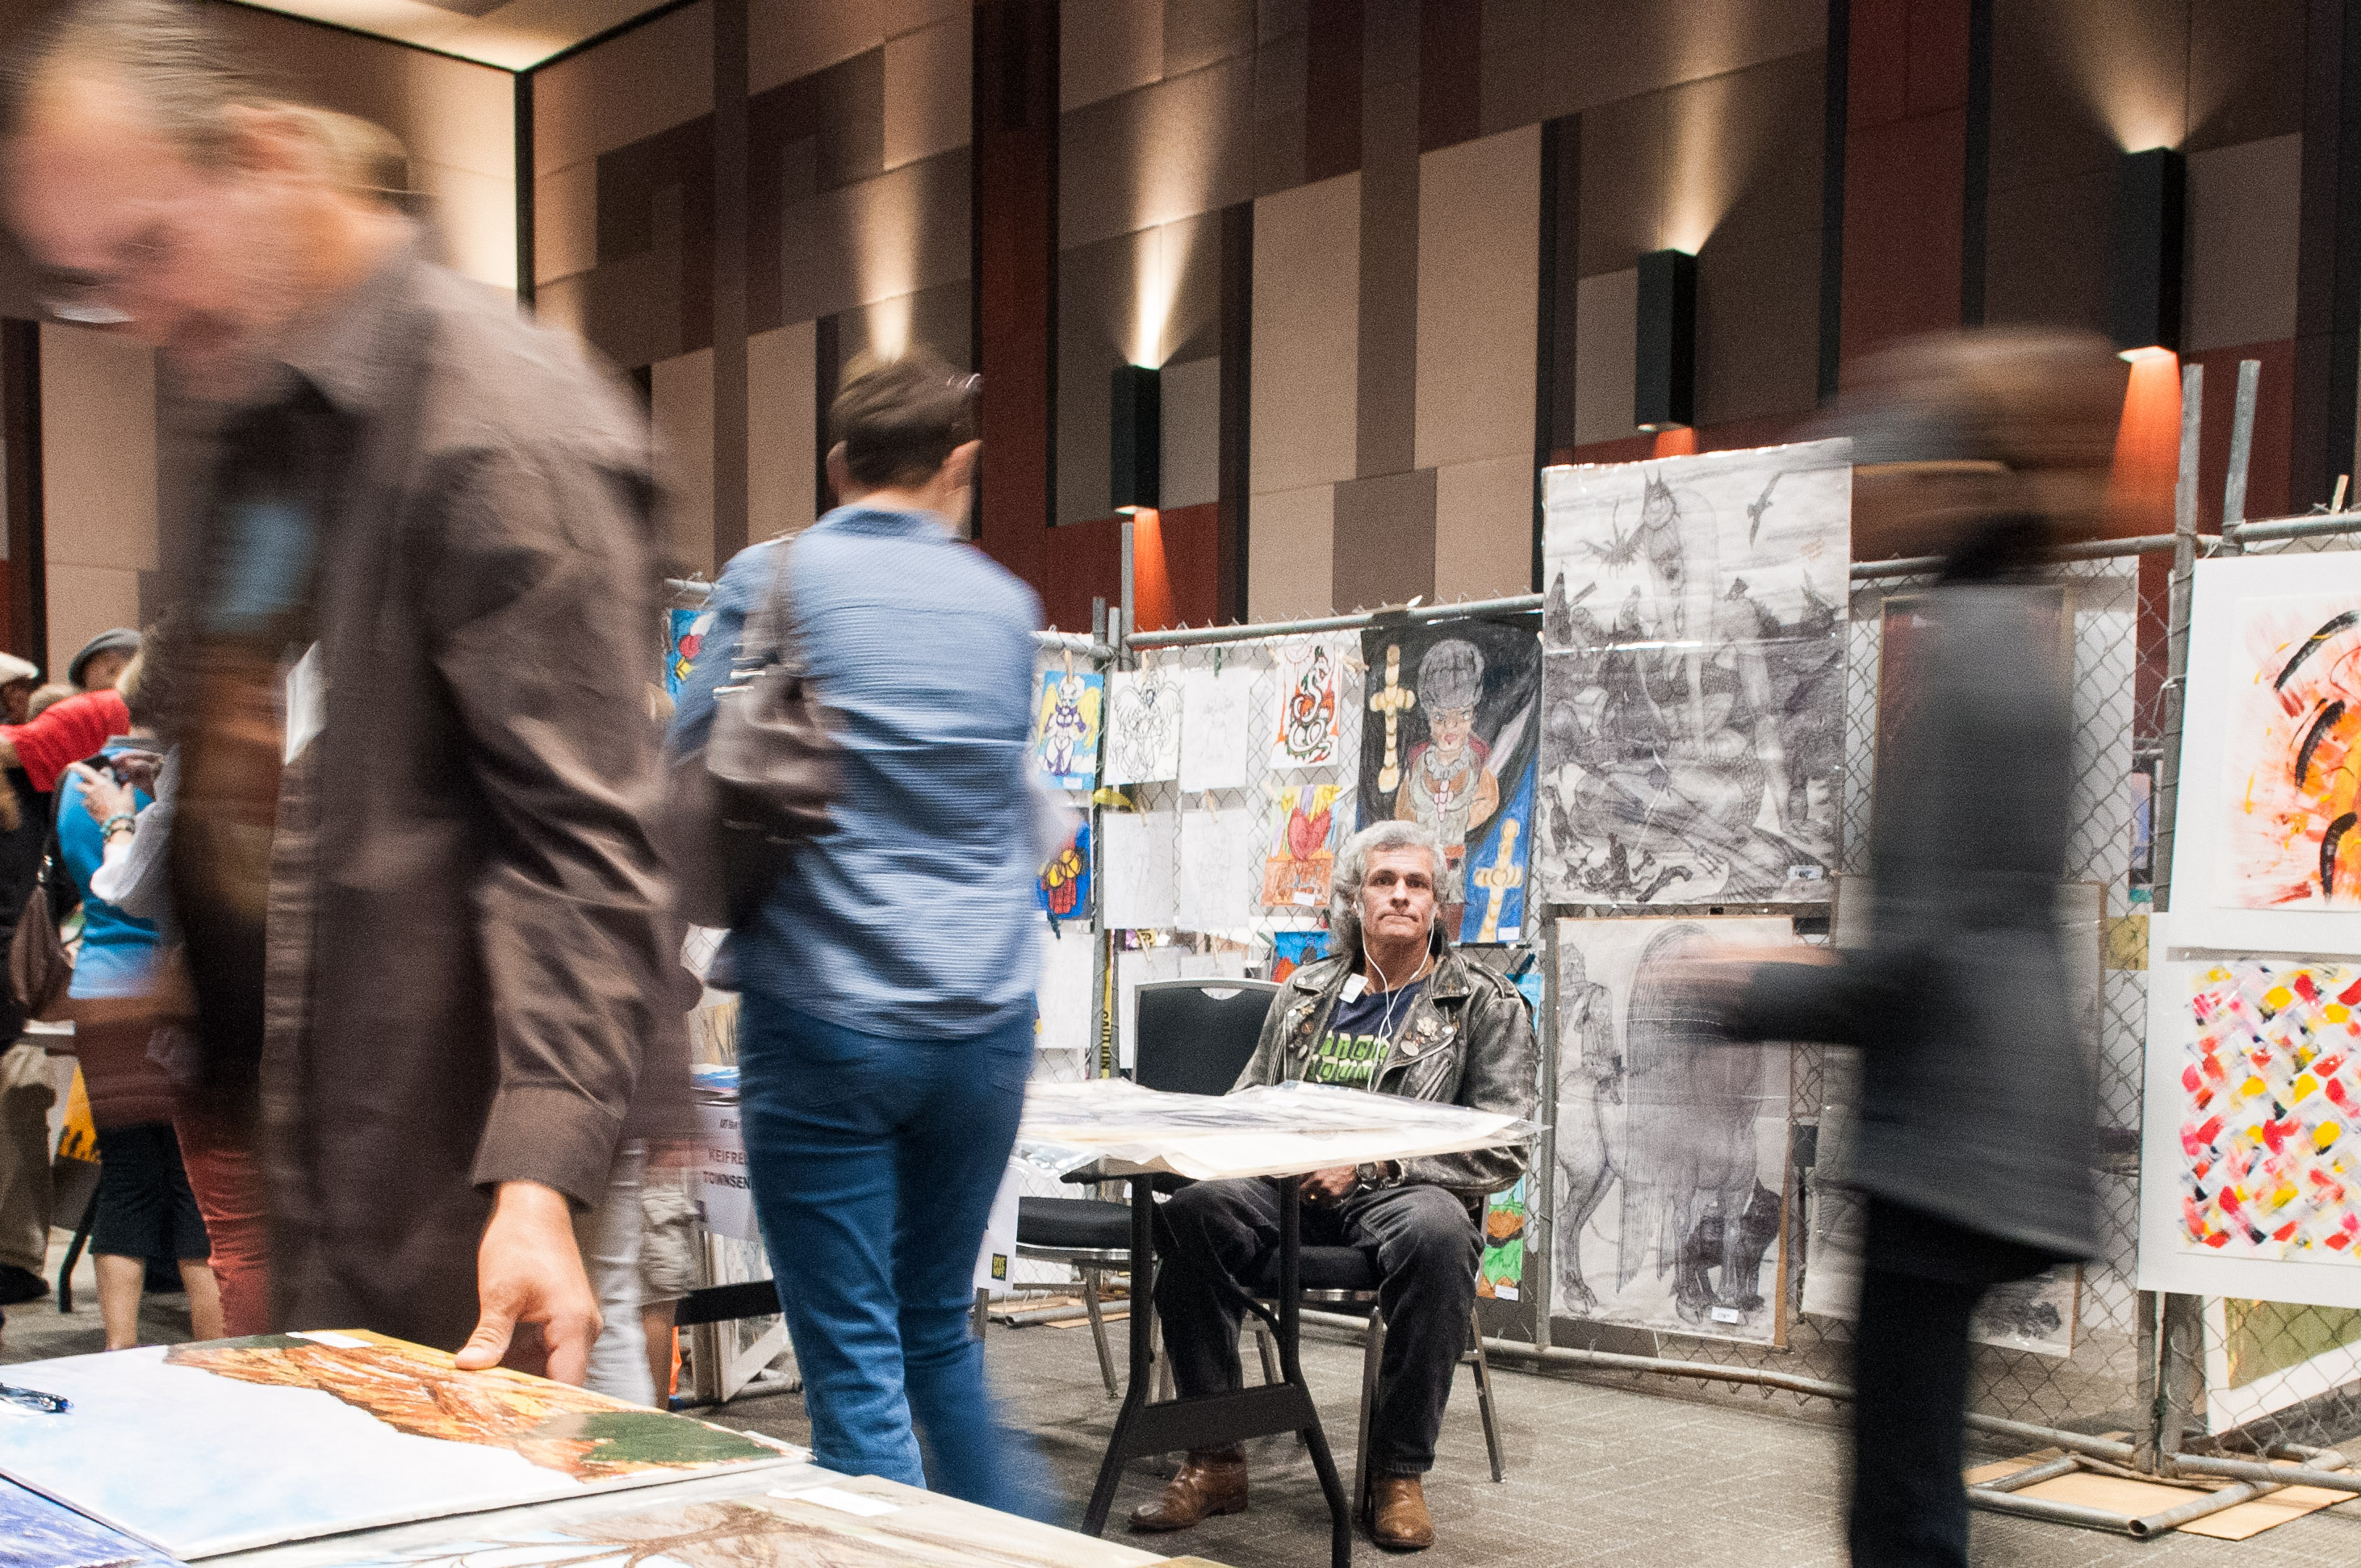 People walk throughout the Austin Convention Center looking at the various art pieces for sale. Photo by Skylar Isdale